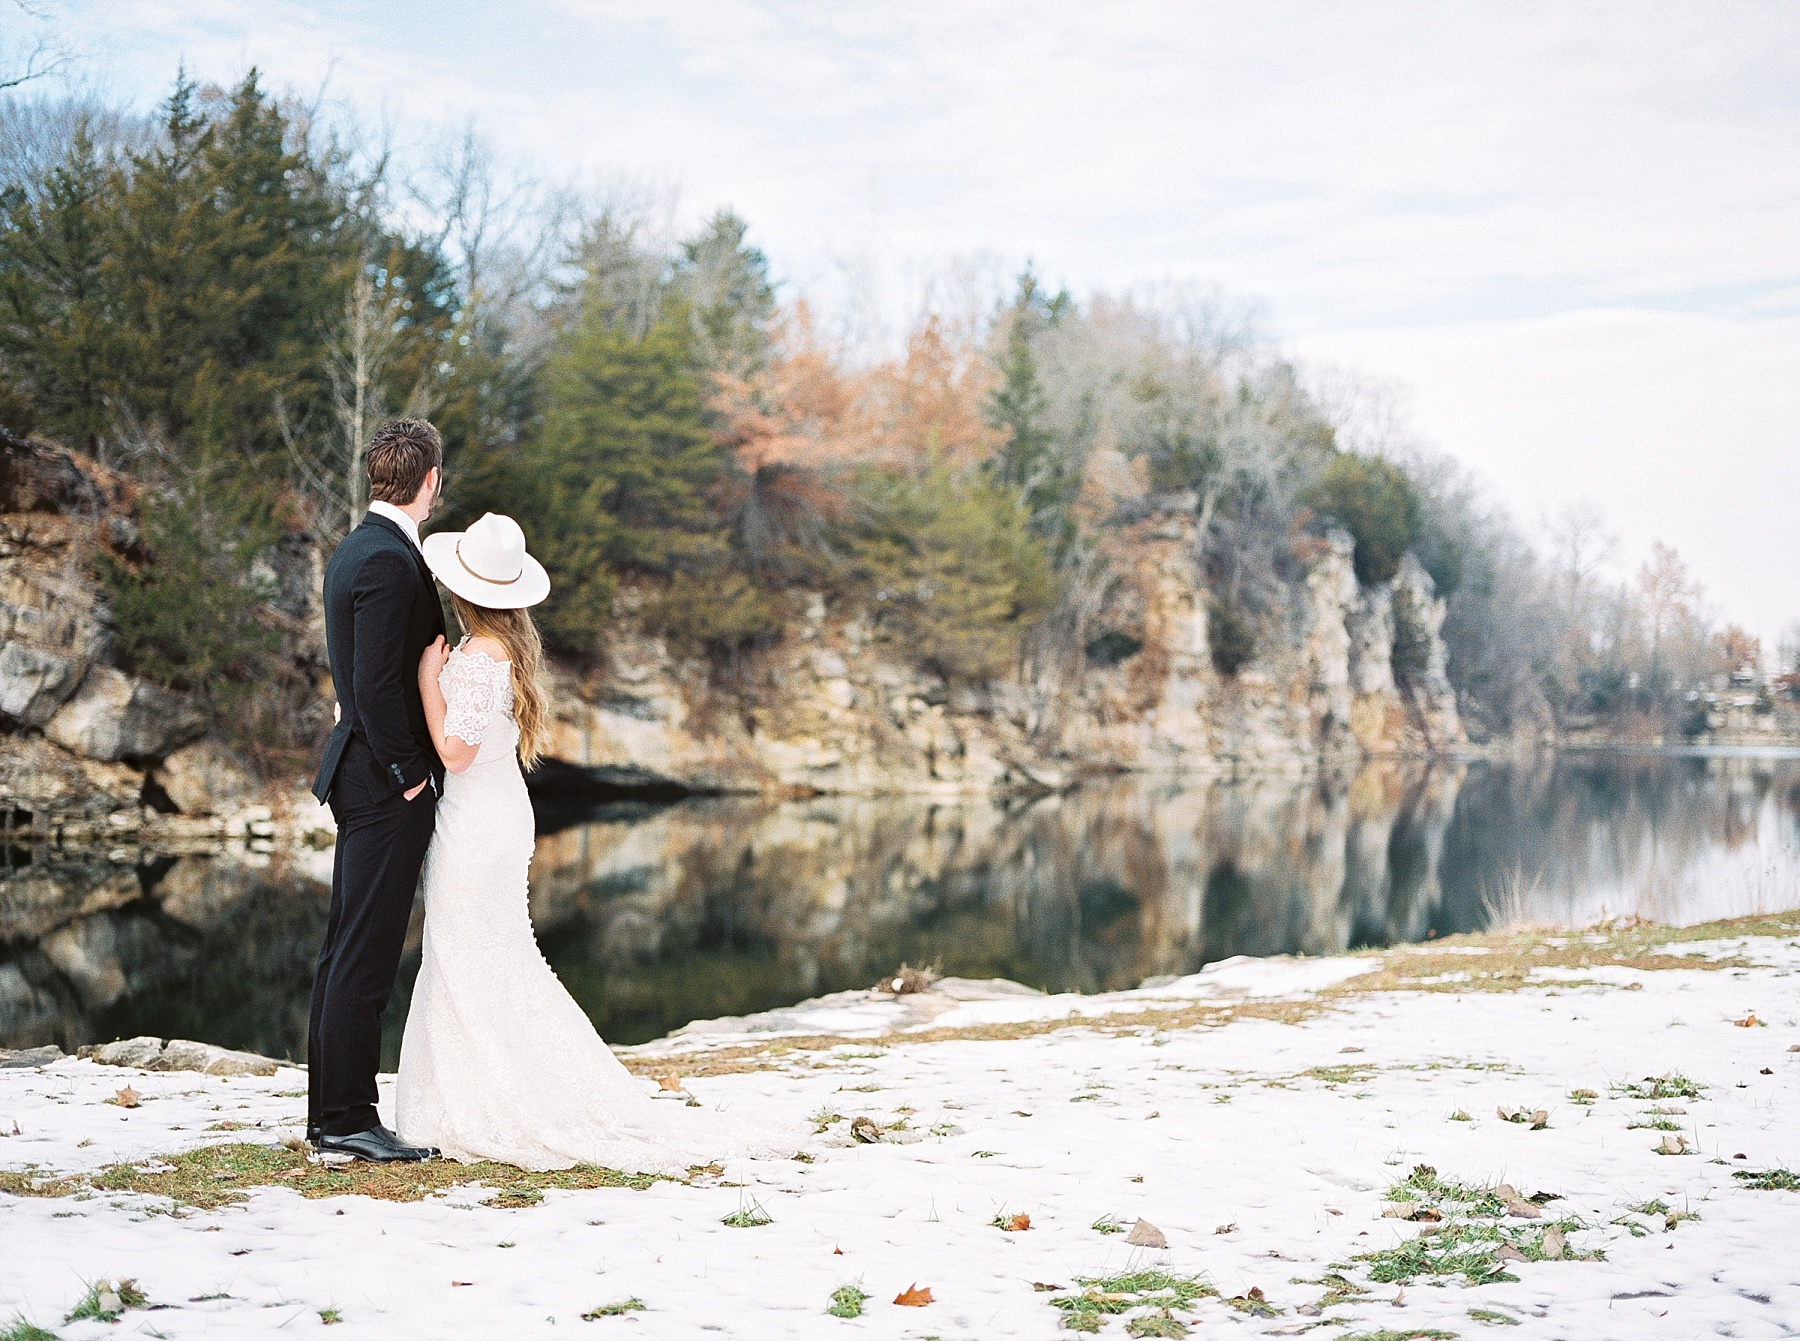 Snowy Winter Wedding at Wildcliff Events Lake With Earthy Jewel Tones and Organic Refined Style by Kelsi Kliethermes Photography Kansas City Missouri Wedding Photographer_0069.jpg